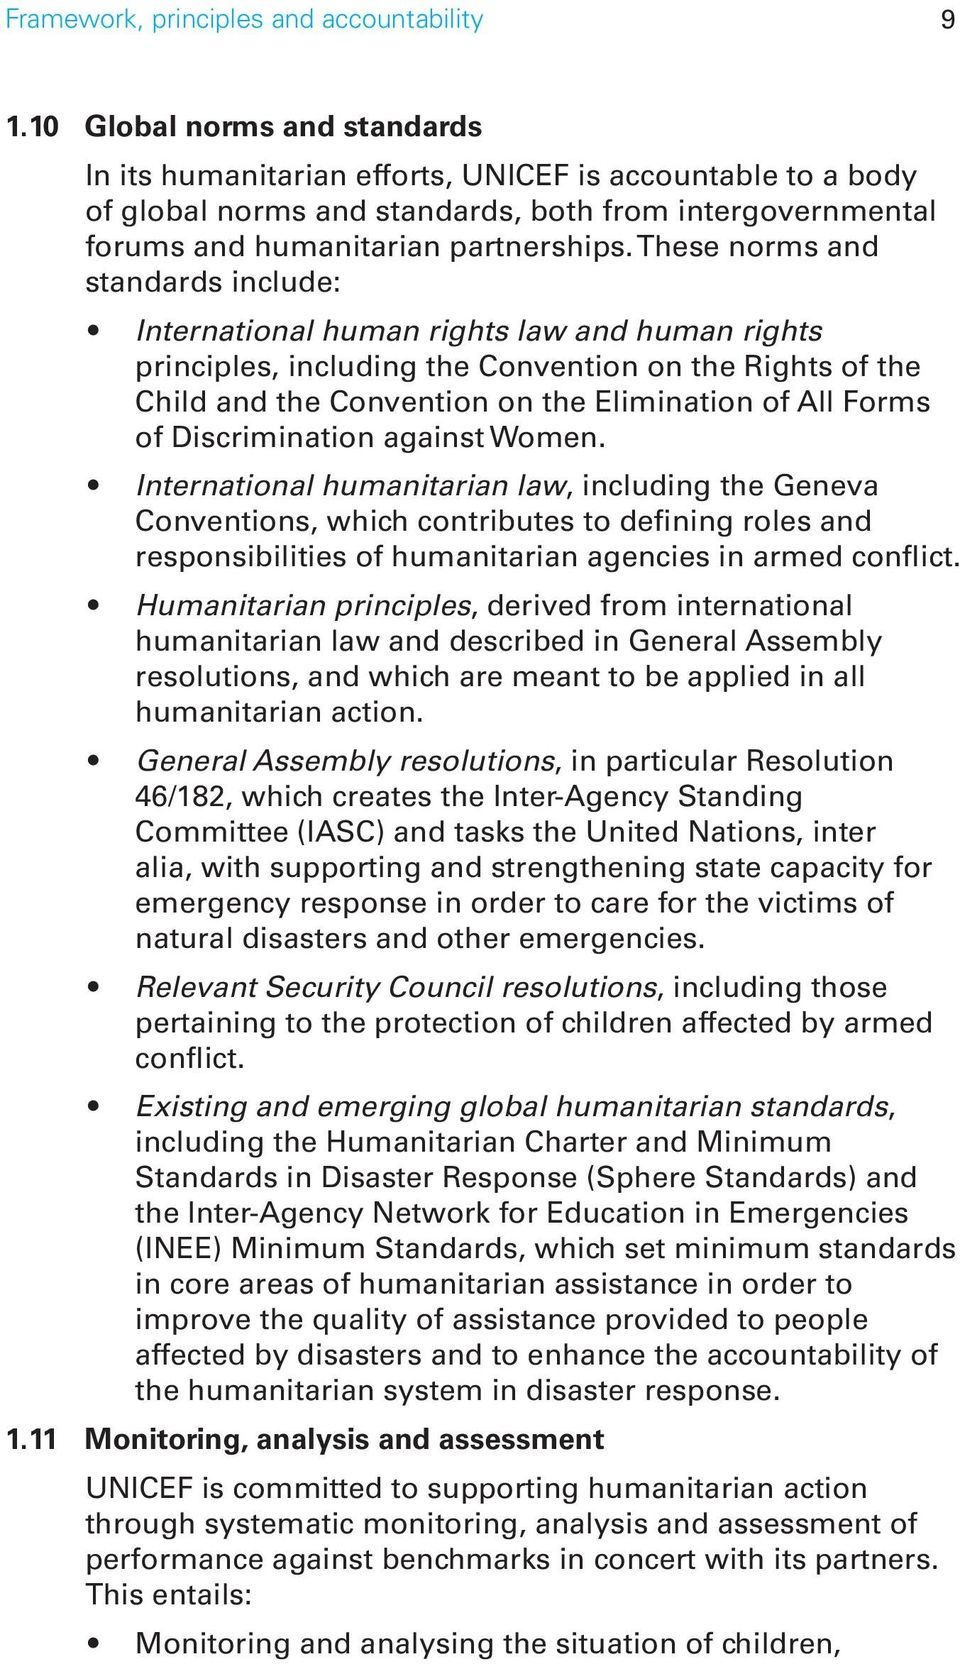 These norms and standards include: International human rights law and human rights principles, including the Convention on the Rights of the Child and the Convention on the Elimination of All Forms